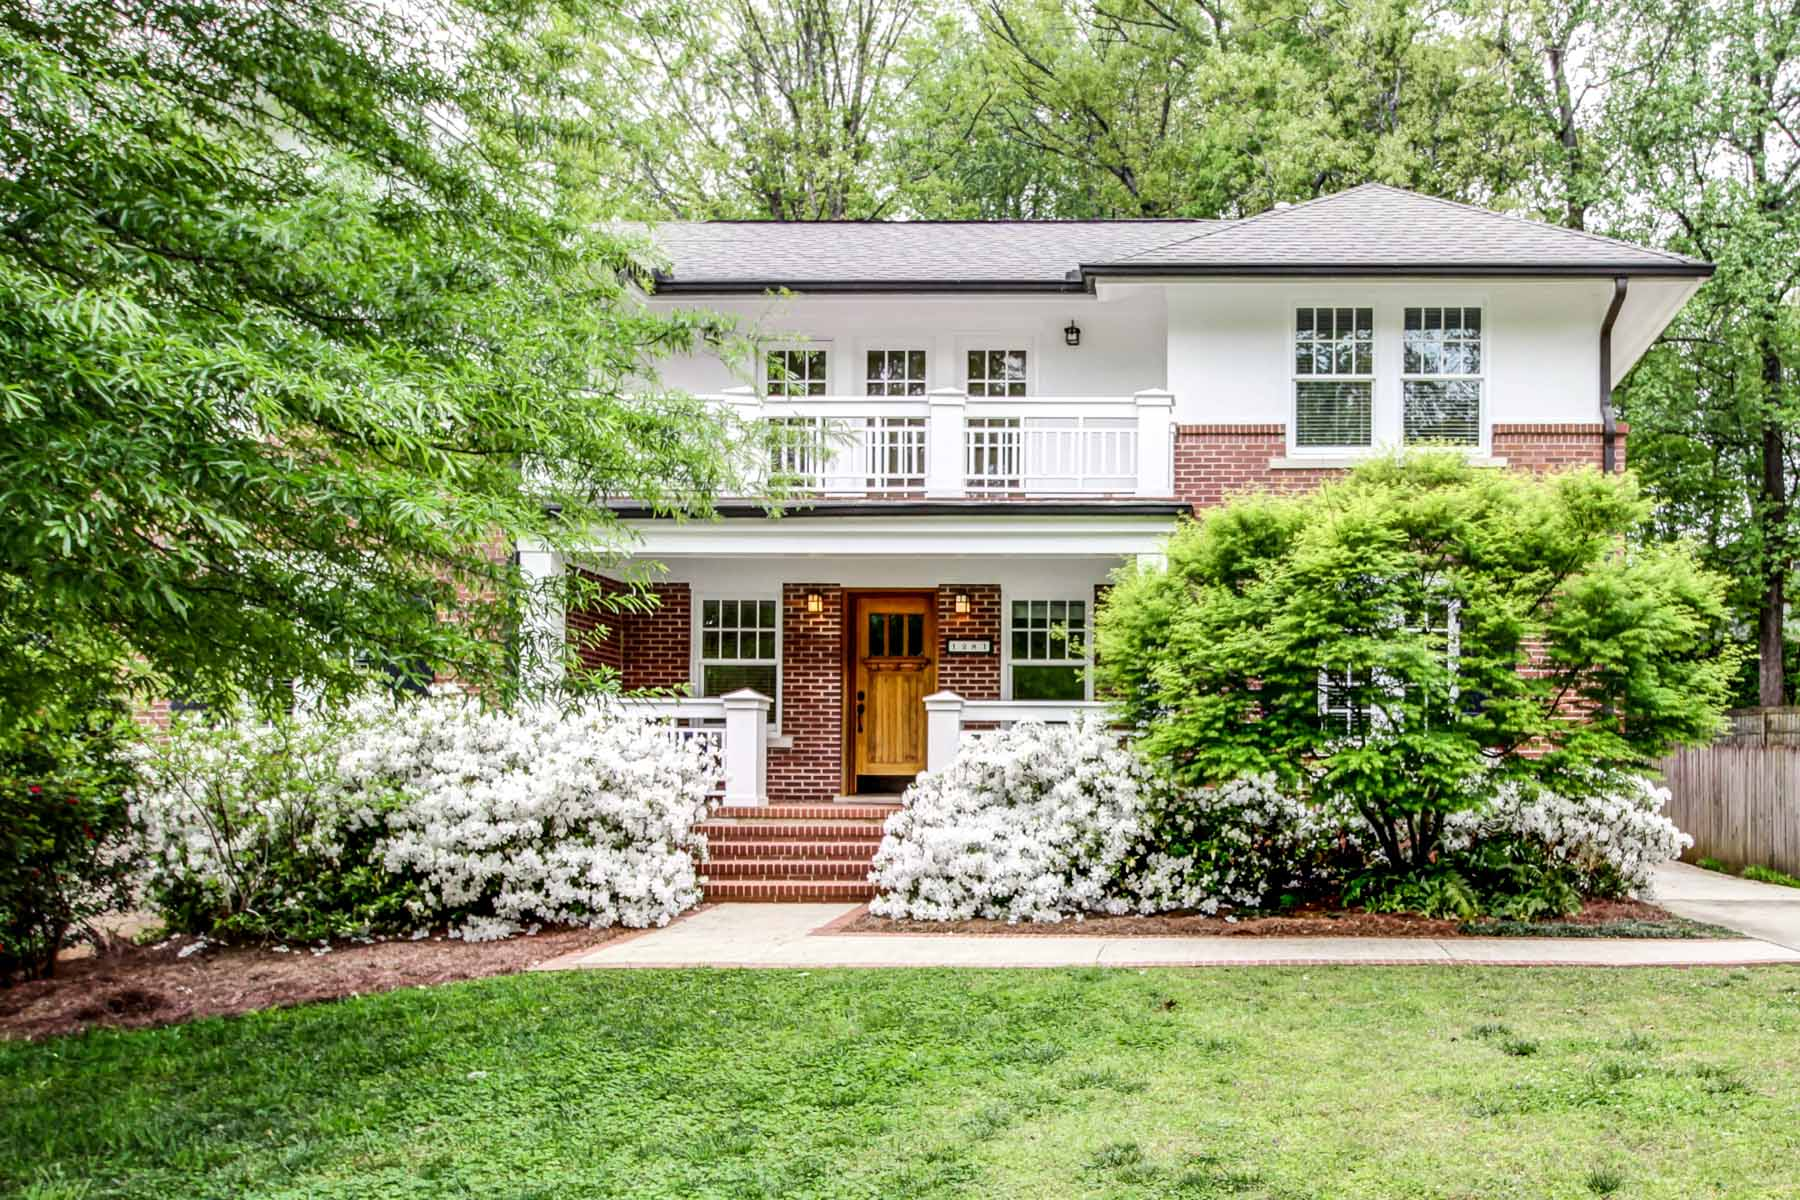 Single Family Home for Sale at Live like you are on vacation! 1281 Briardale Lane NE Druid Hills, Atlanta, Georgia, 30306 United States